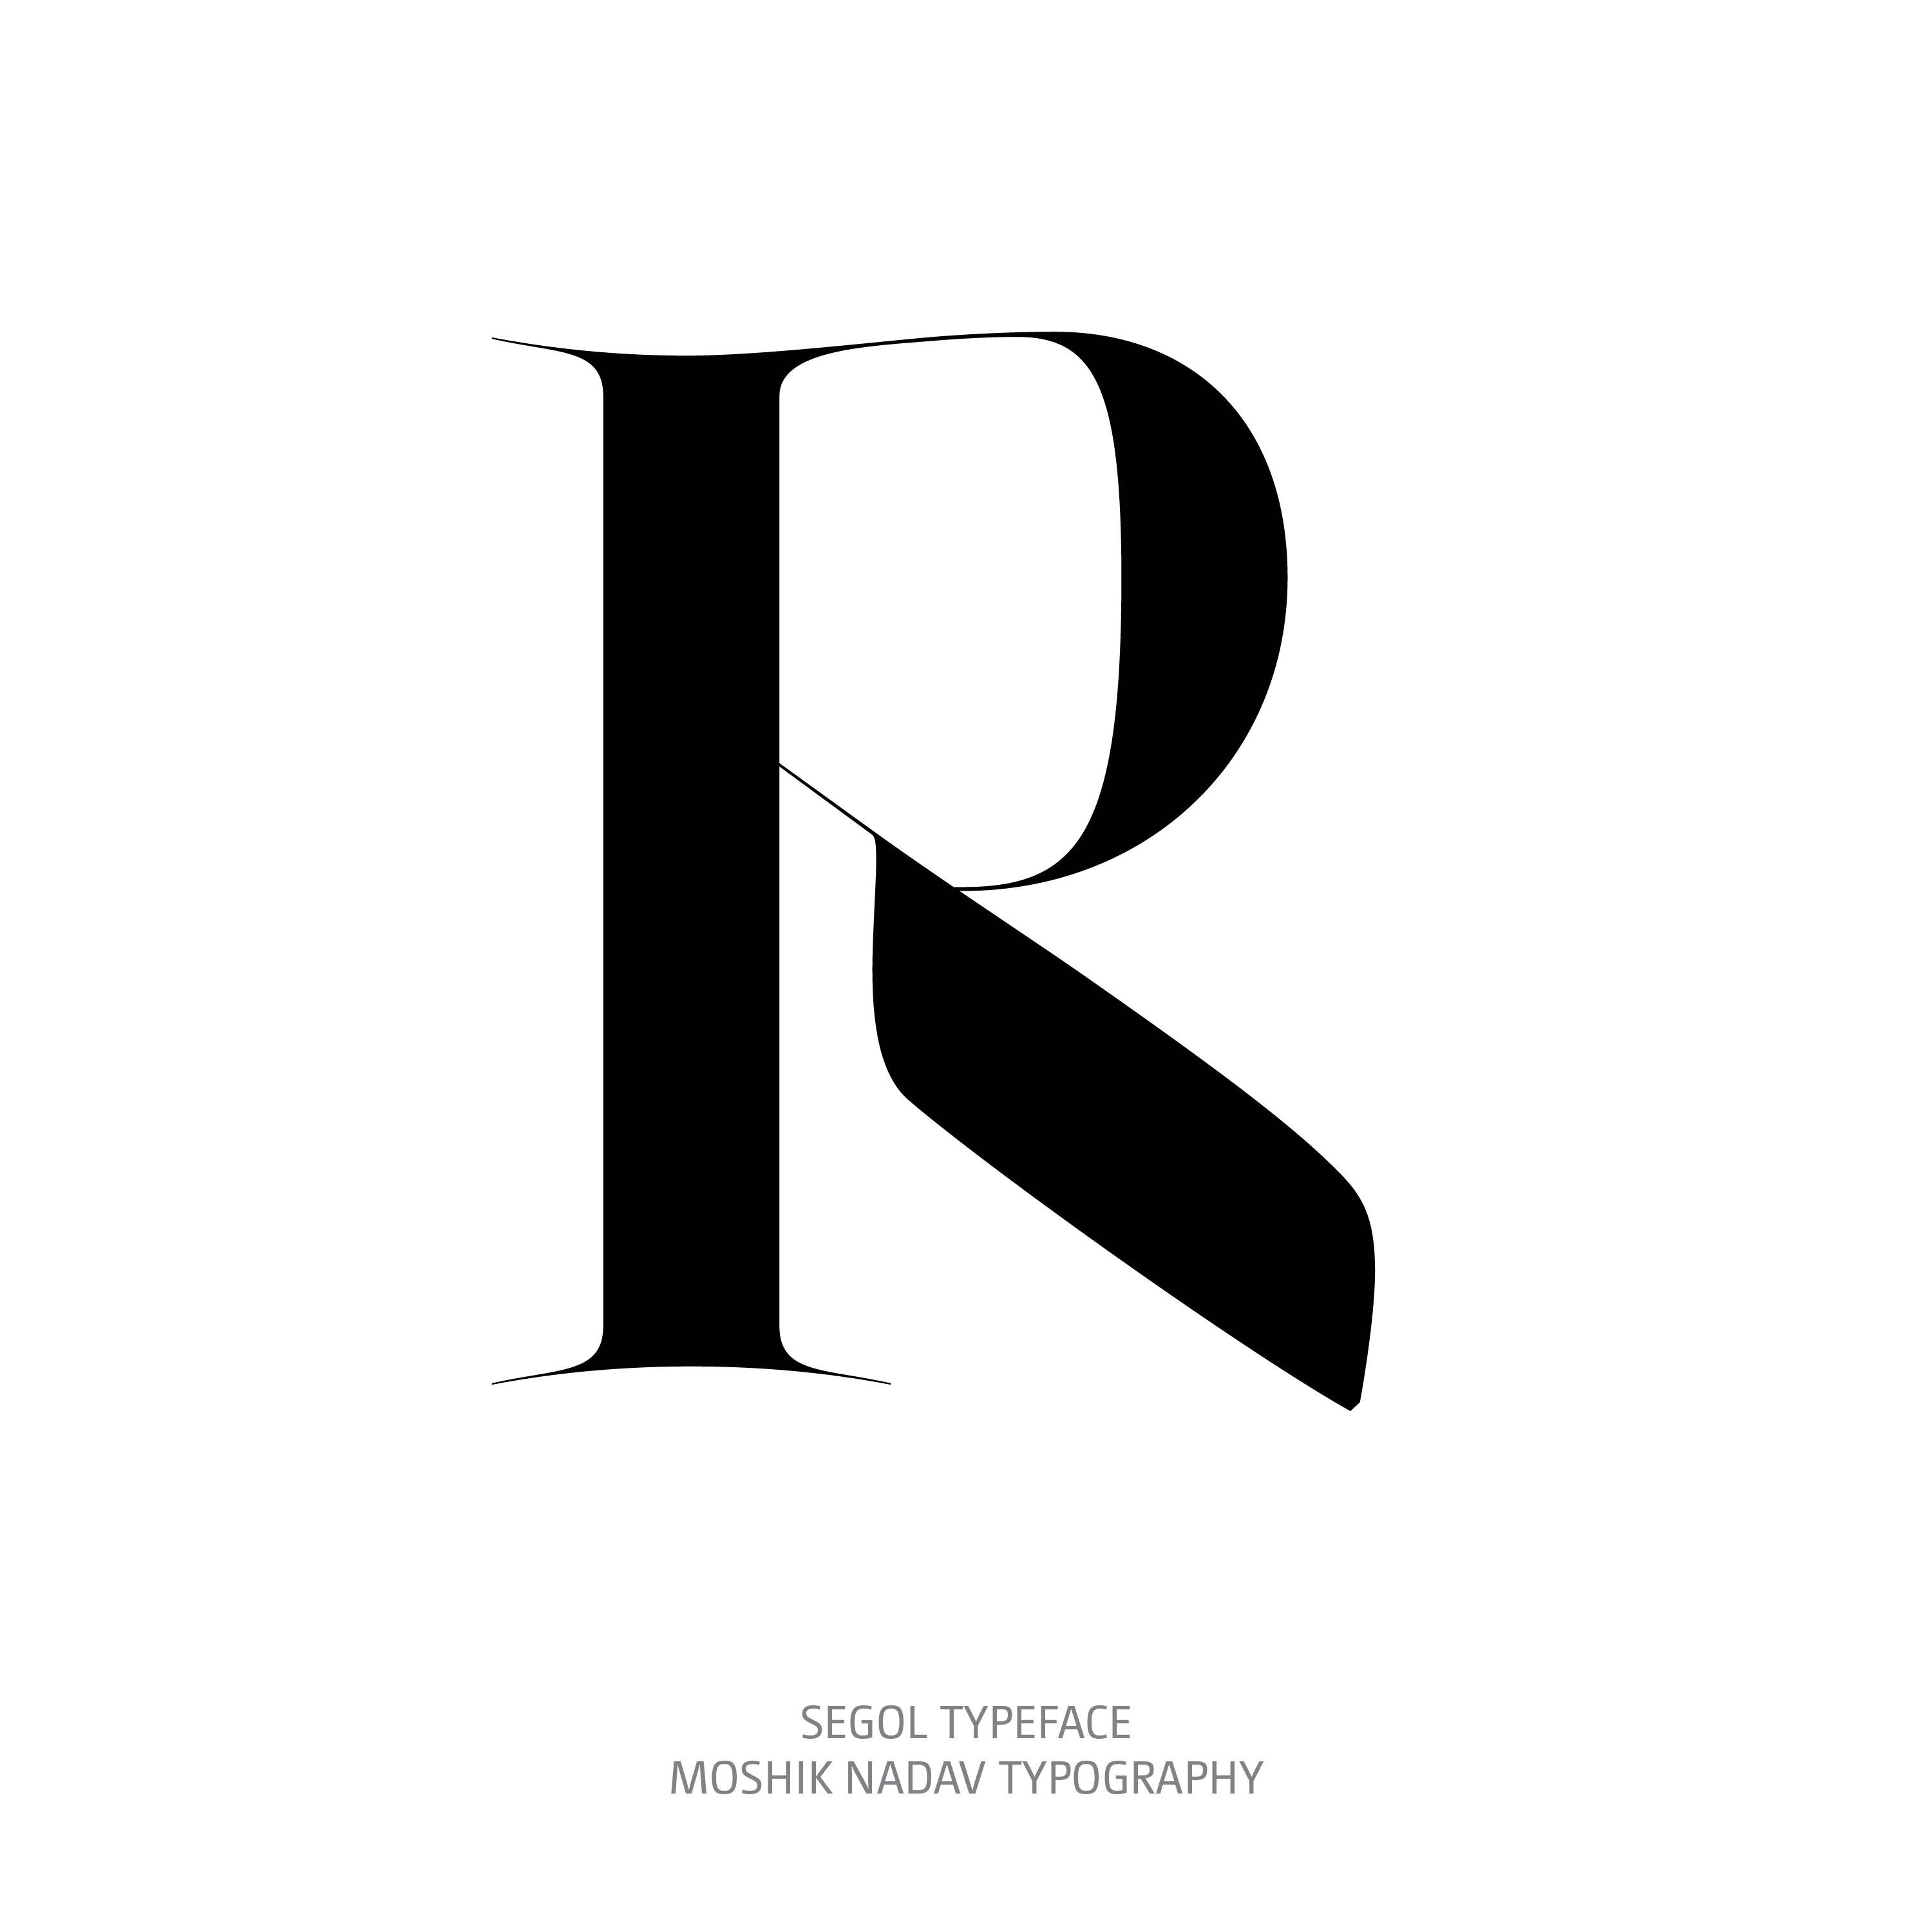 Segol Typeface R The Ultimate Font For Fashion Typography and sexy logos